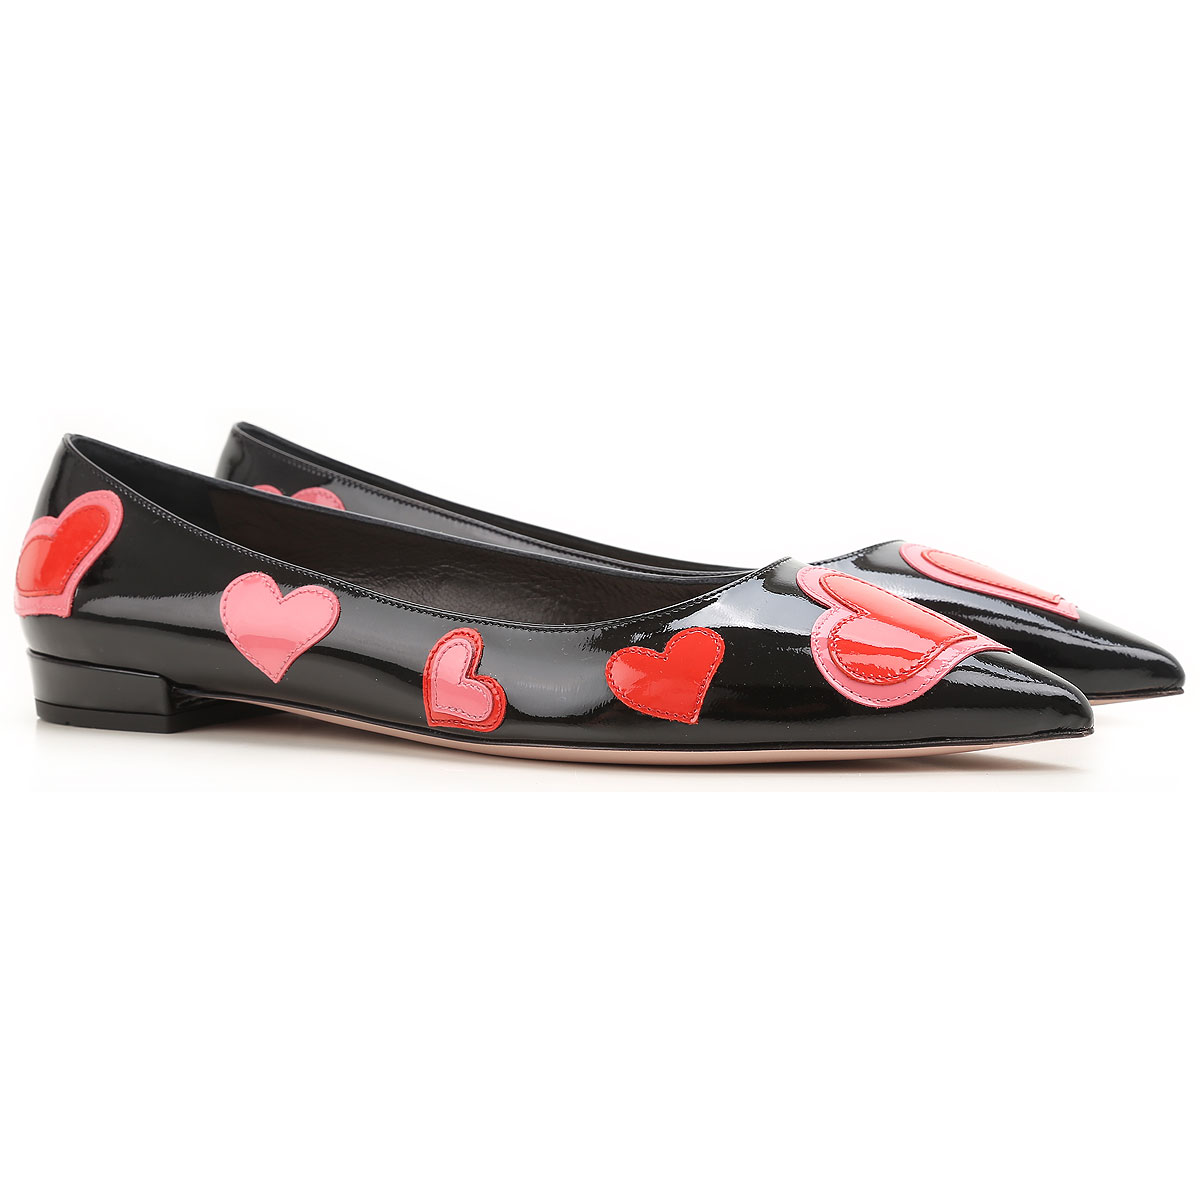 Image of Prada Ballet Flats Ballerina Shoes for Women On Sale in Outlet, Black, Patent, 2017, 7.5 8 8.5